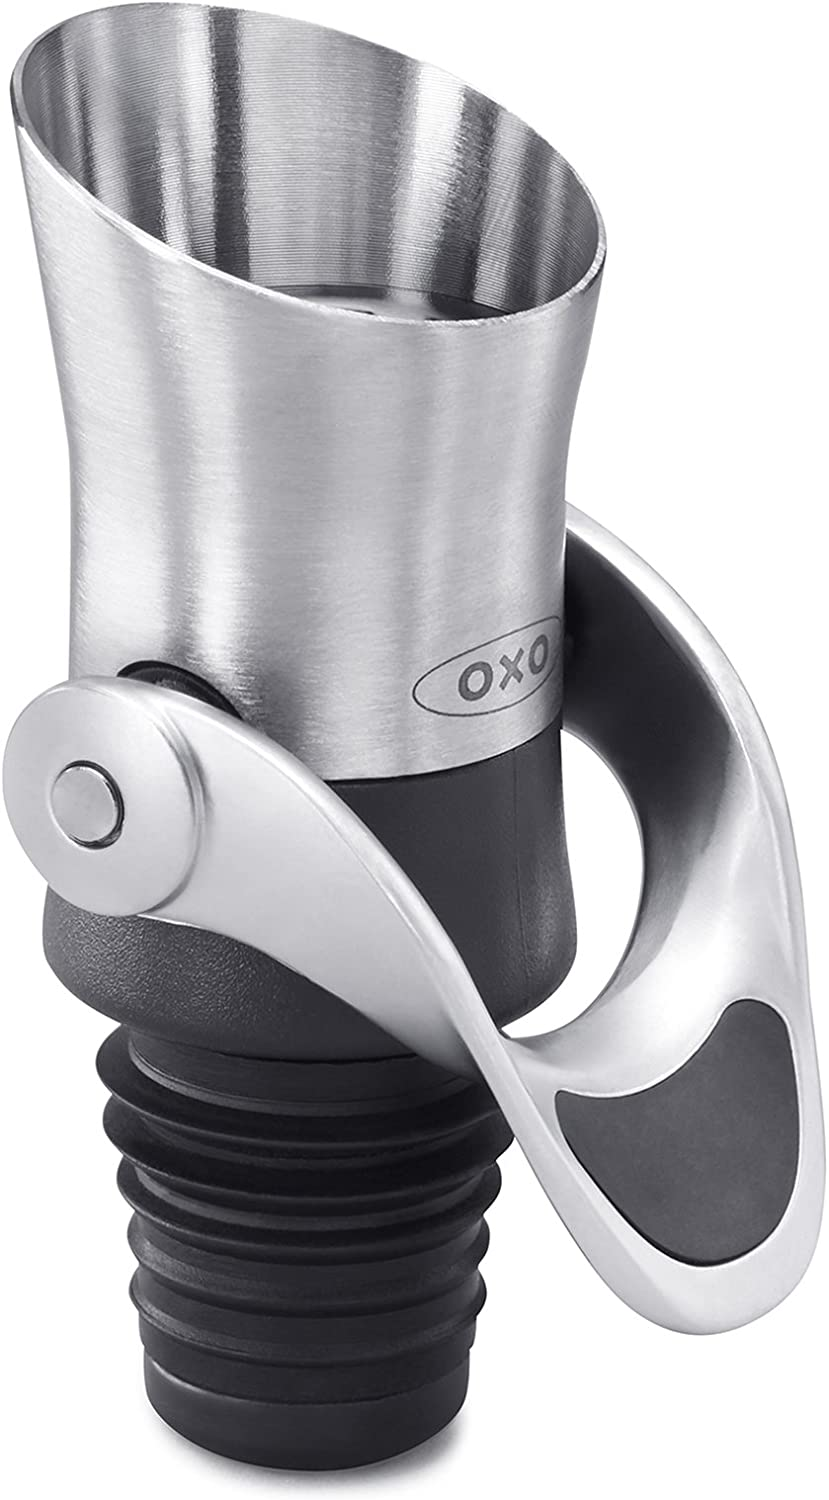 OXO 11136400 SteeL Wine Stopper and Pourer, Stainless Steel